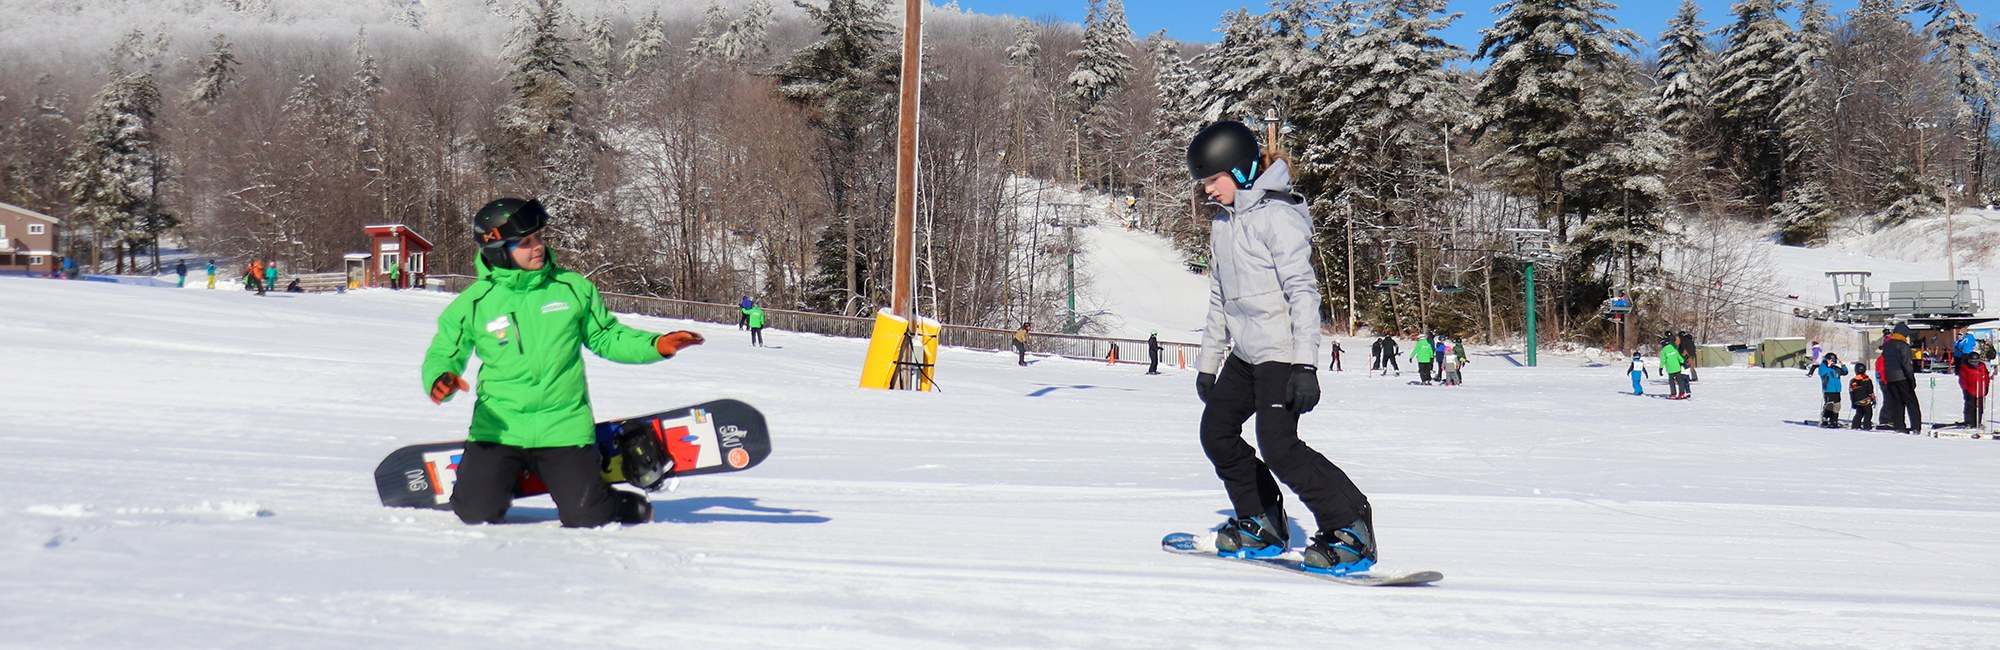 Beginner Snowboard Lesson